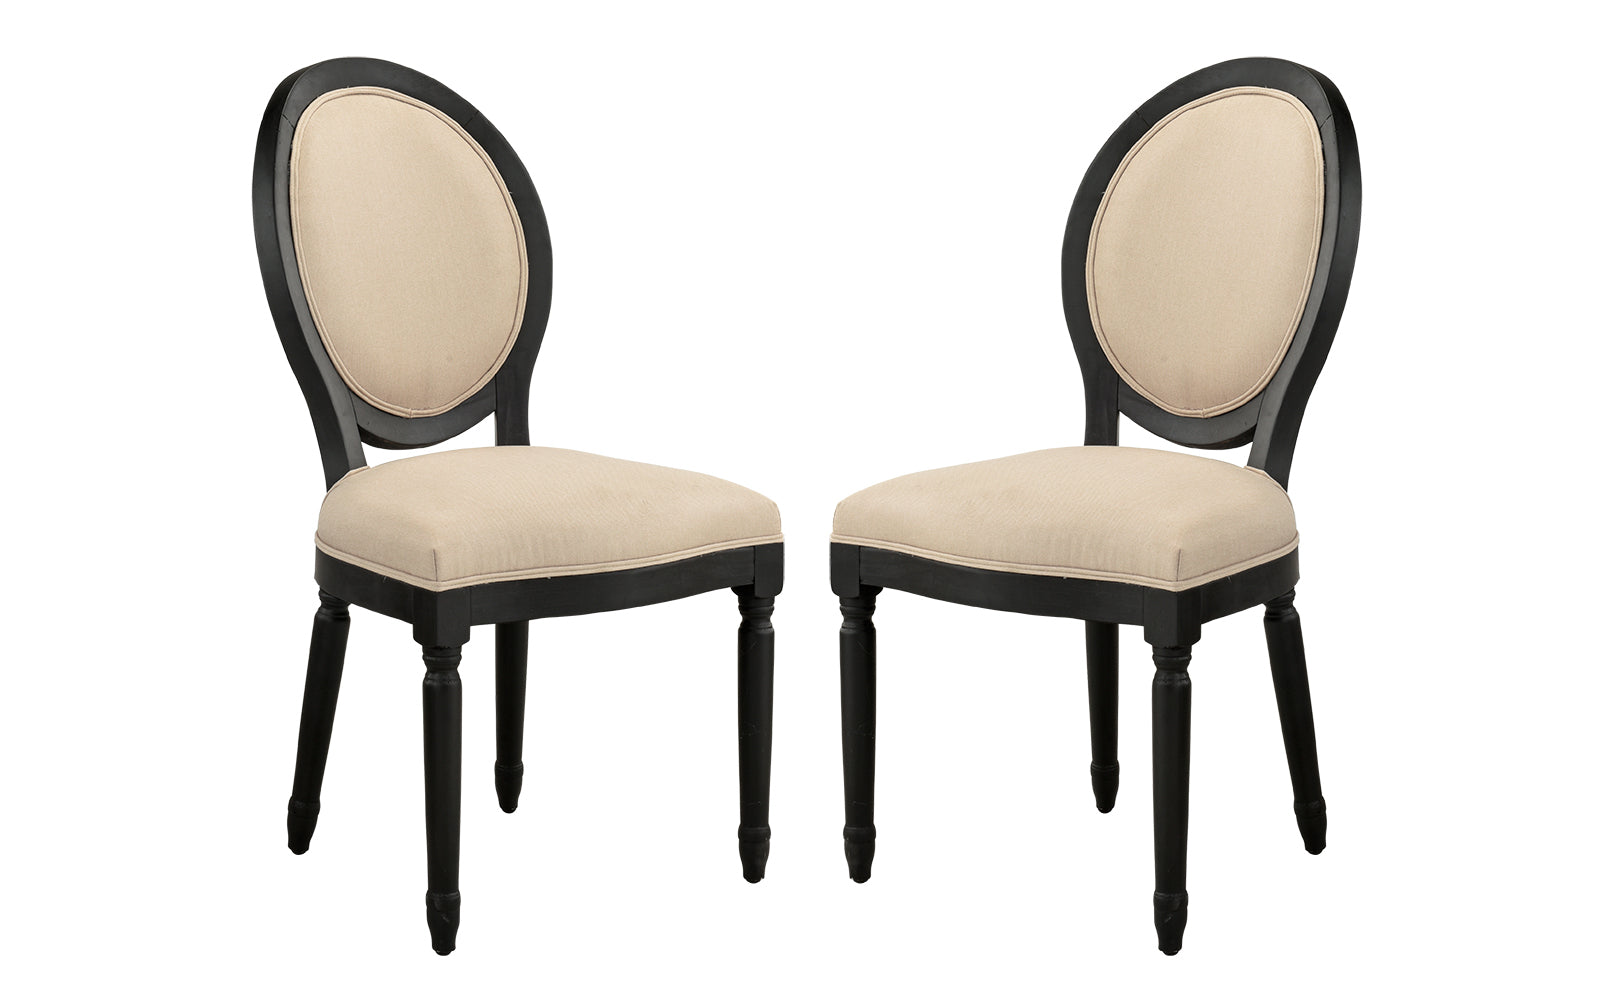 Antique Armless Dining Chairs Image